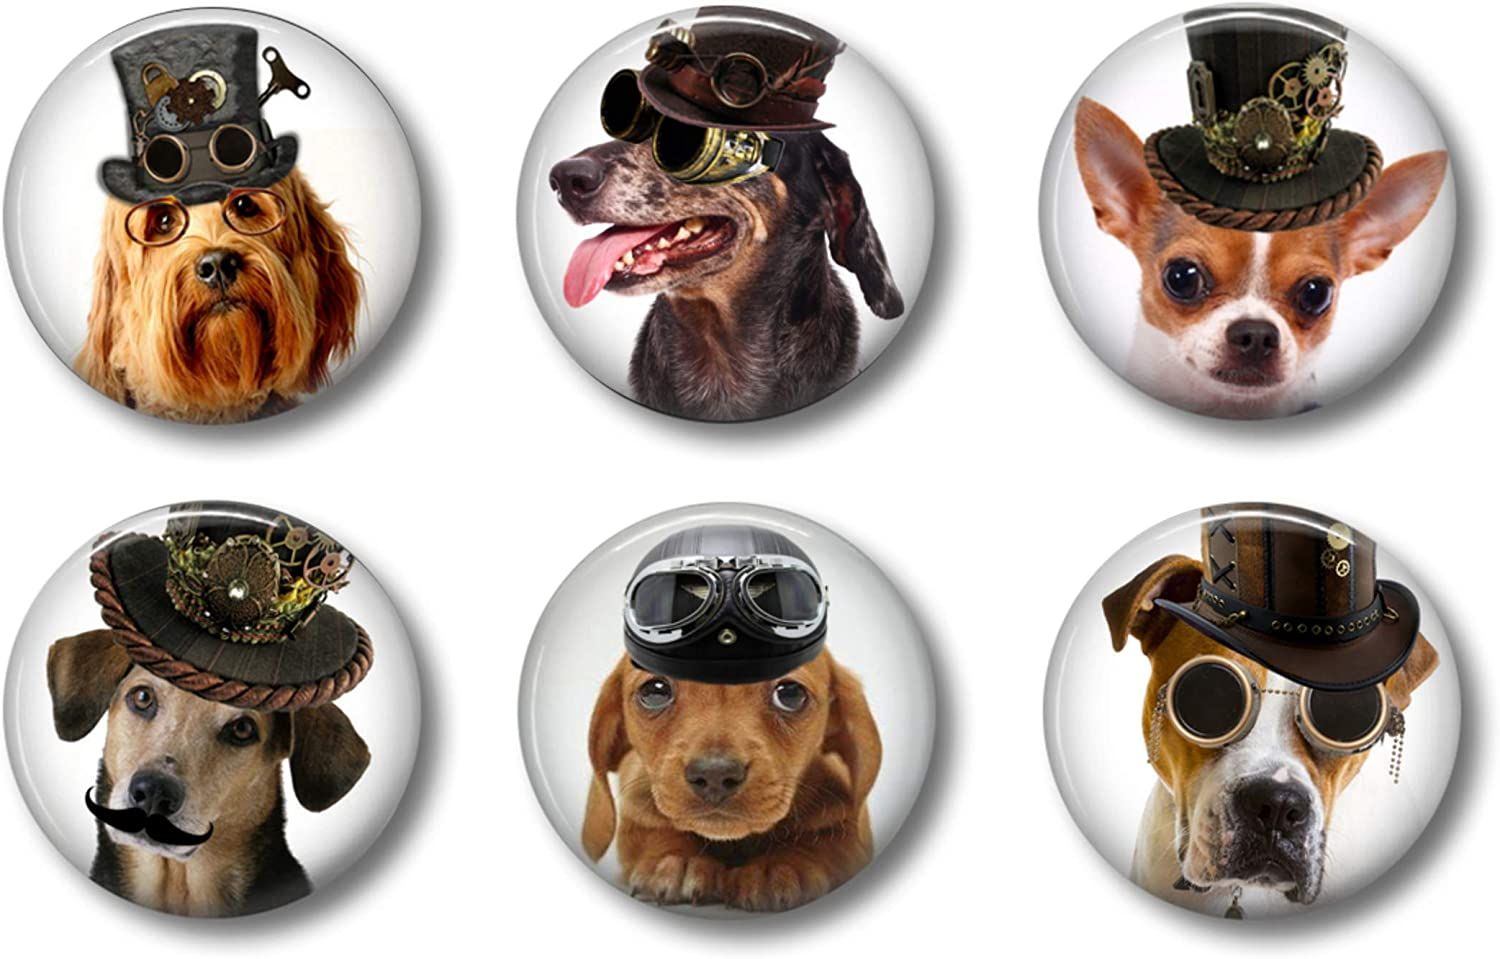 Dog Magnets: Cute Steampunk Dog Locker Magnets for Teens (Dogs)